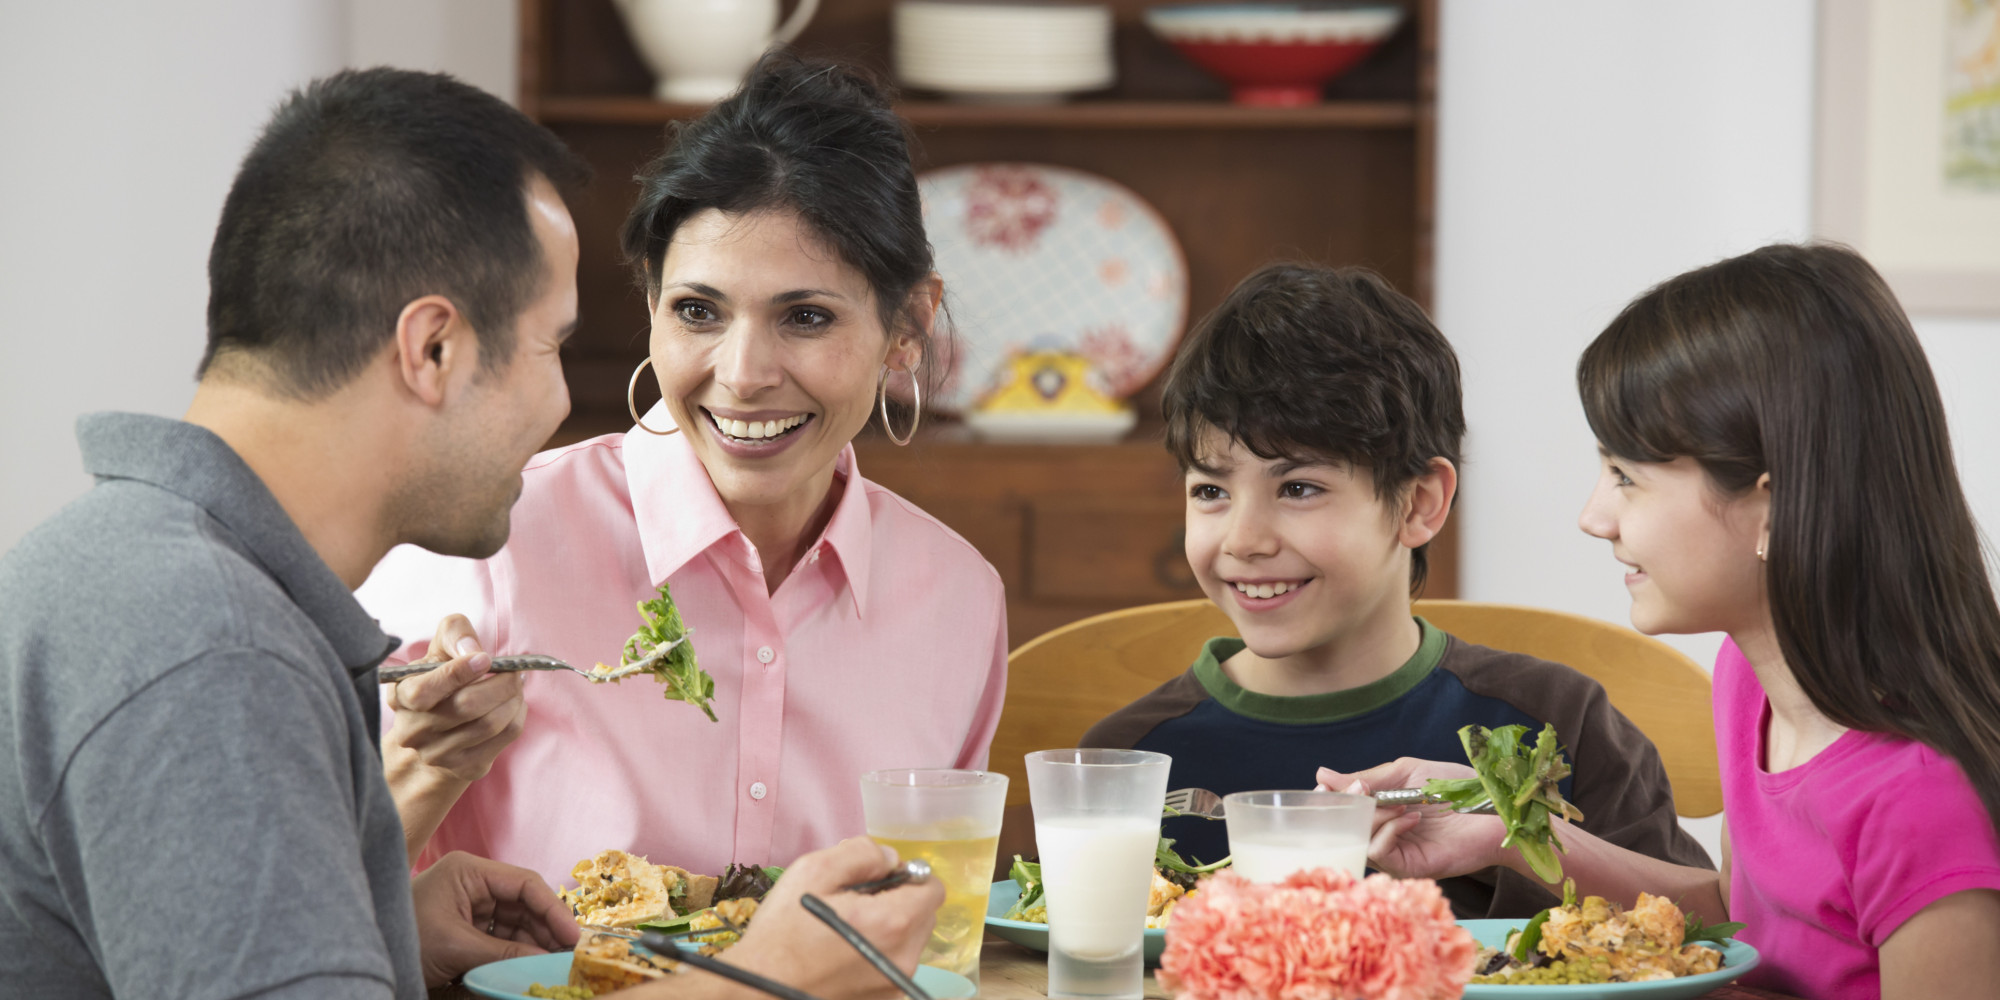 Family traditions: why dinner is so important